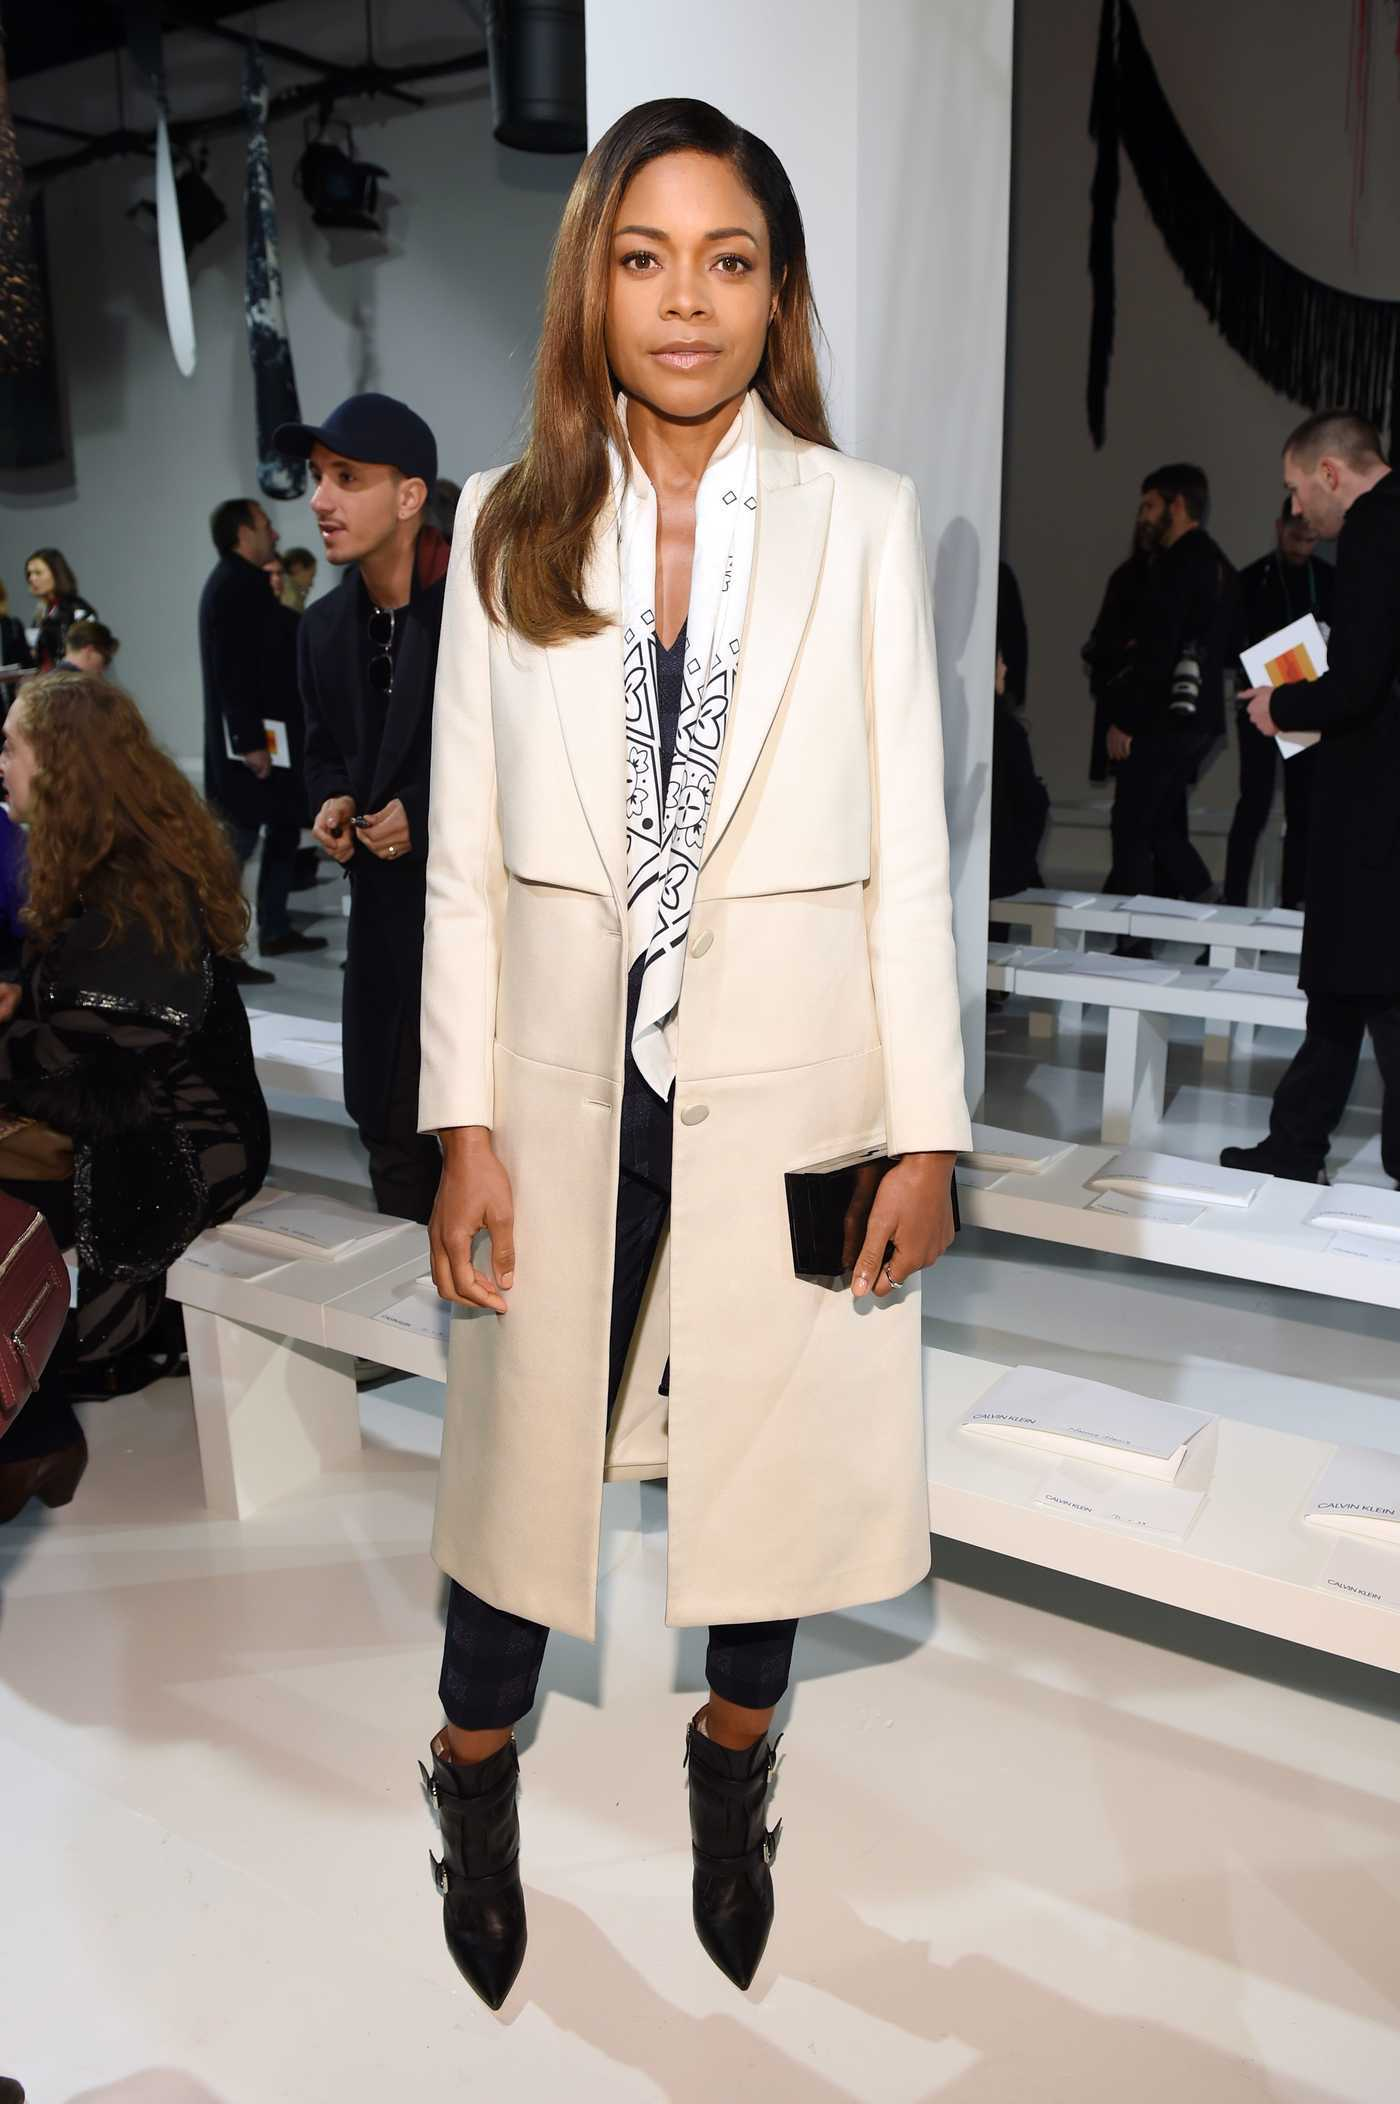 Naomie Harris at the Calvin Klein Fashion Show During the New York Fashion Week 02/10/2017